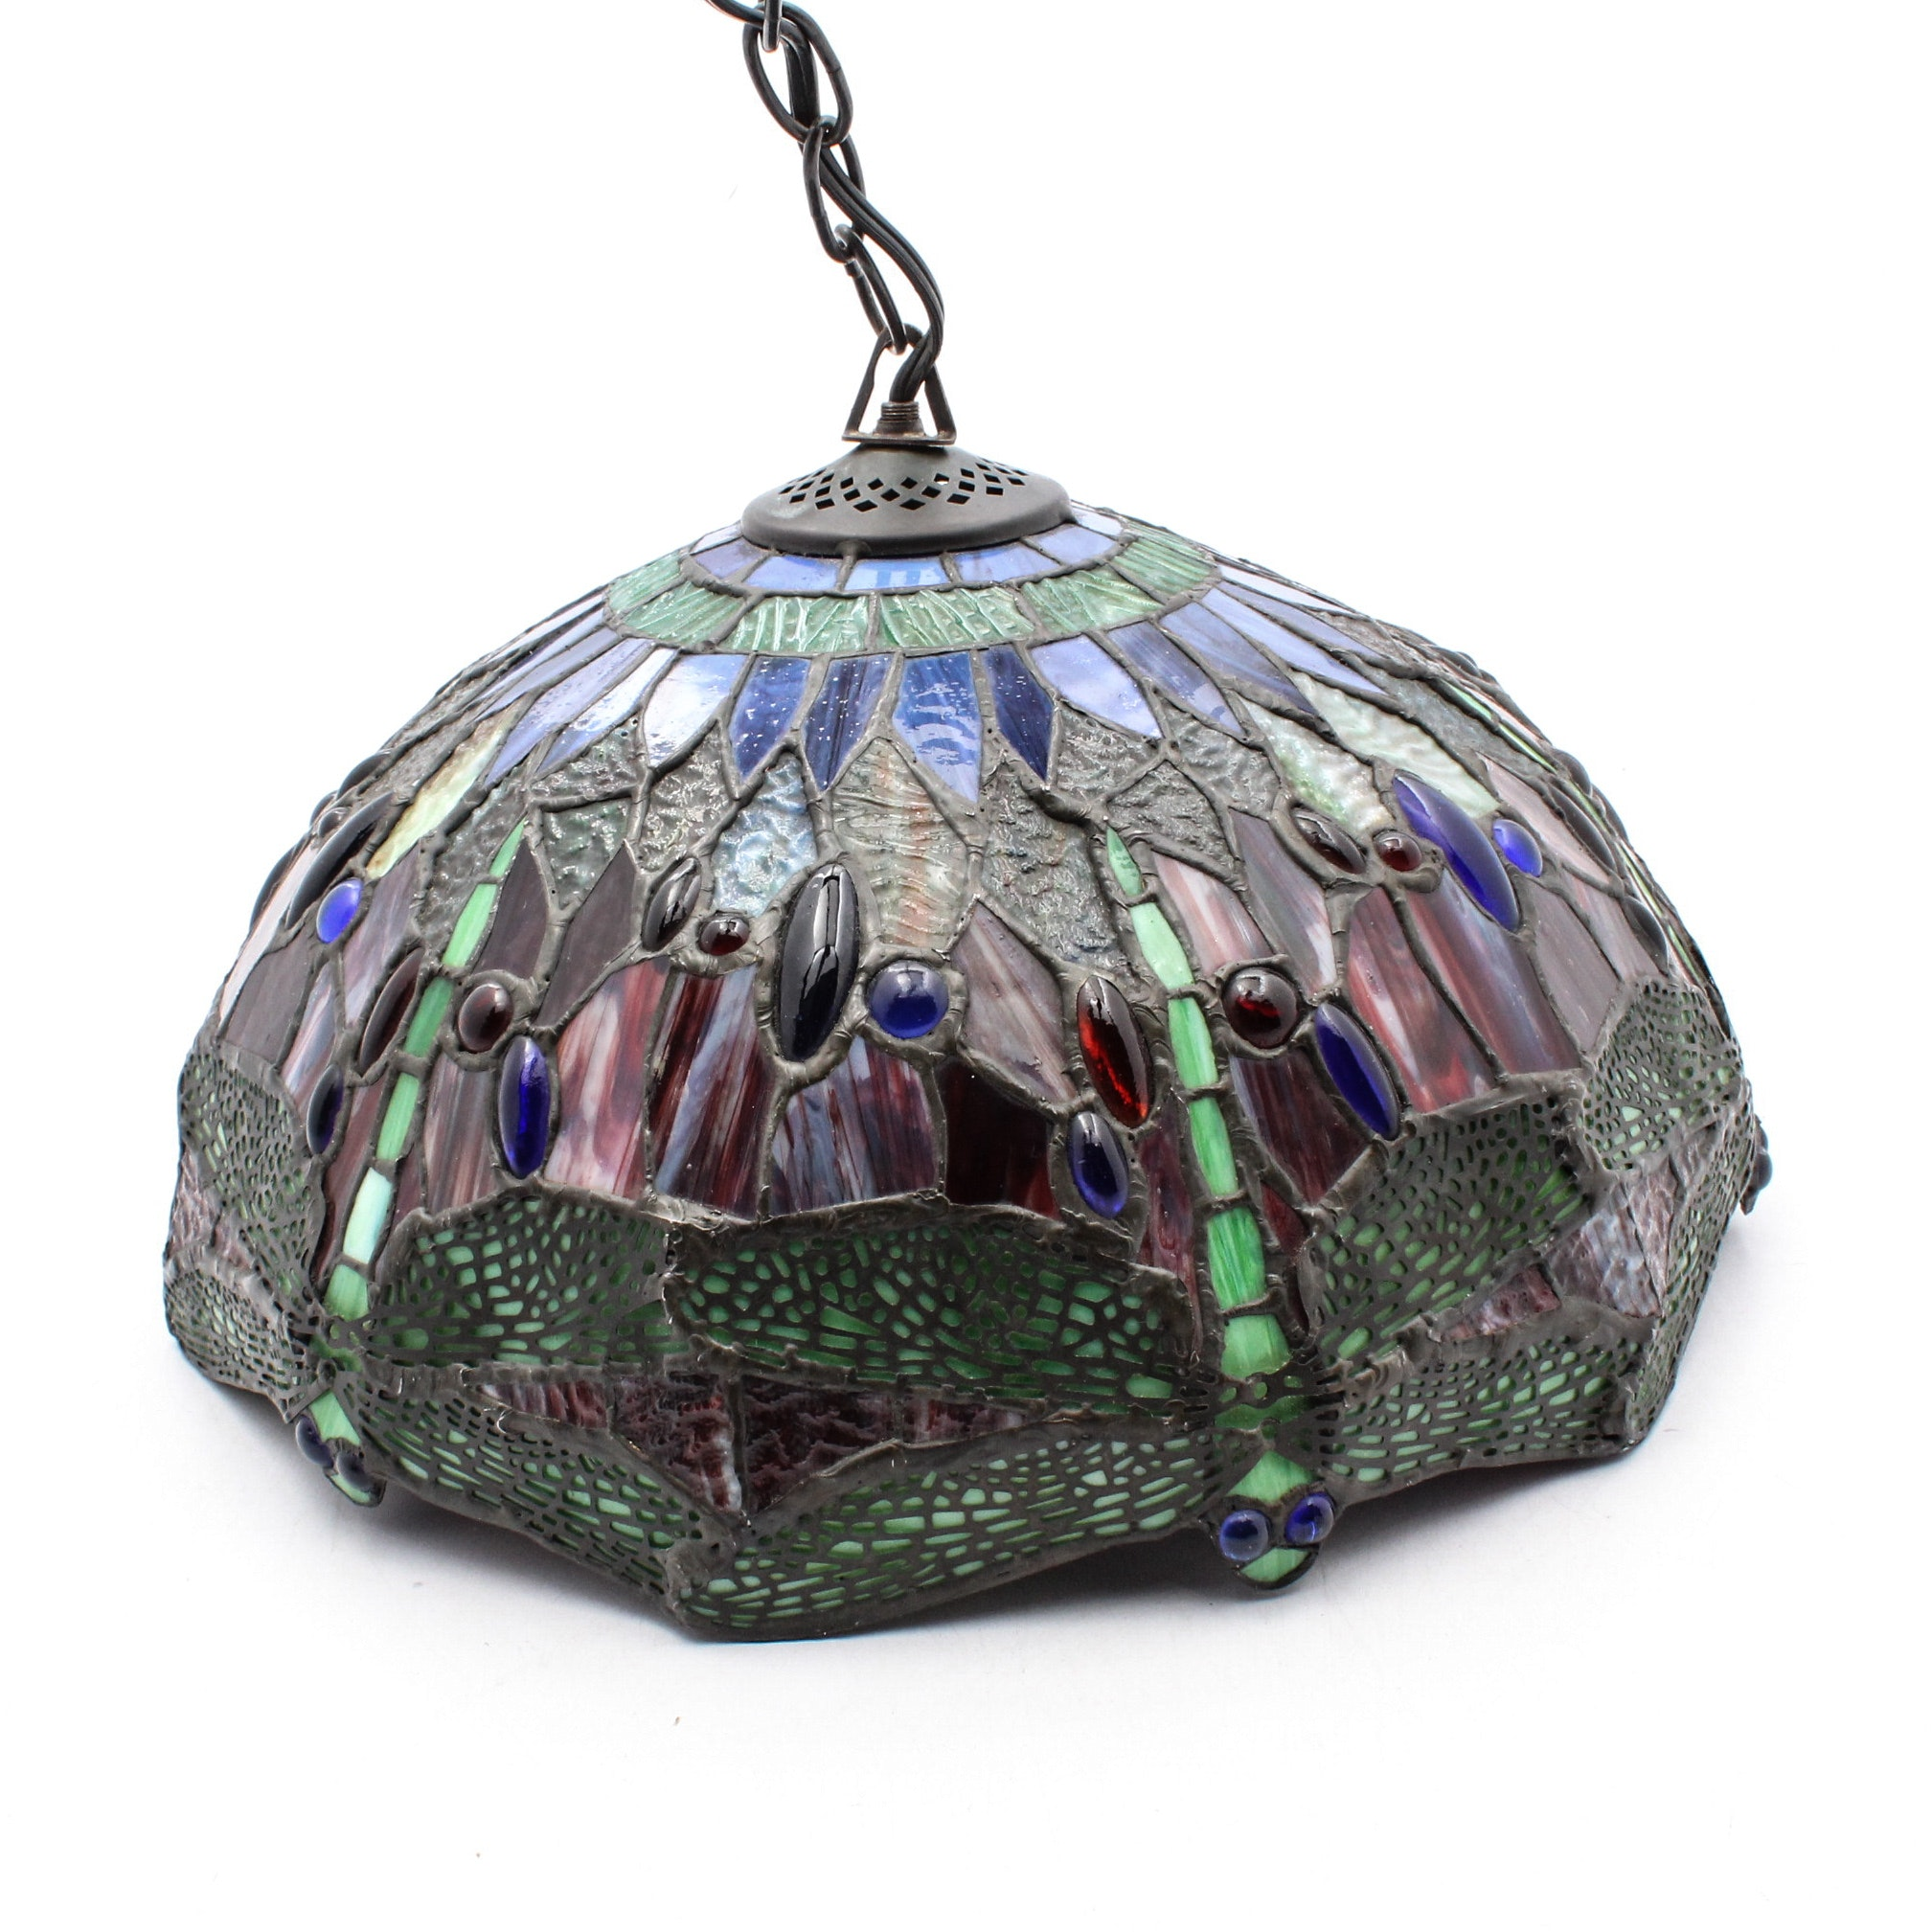 Tiffany Style Dragonfly Motif Stained Slag Glass Hanging Light Fixture